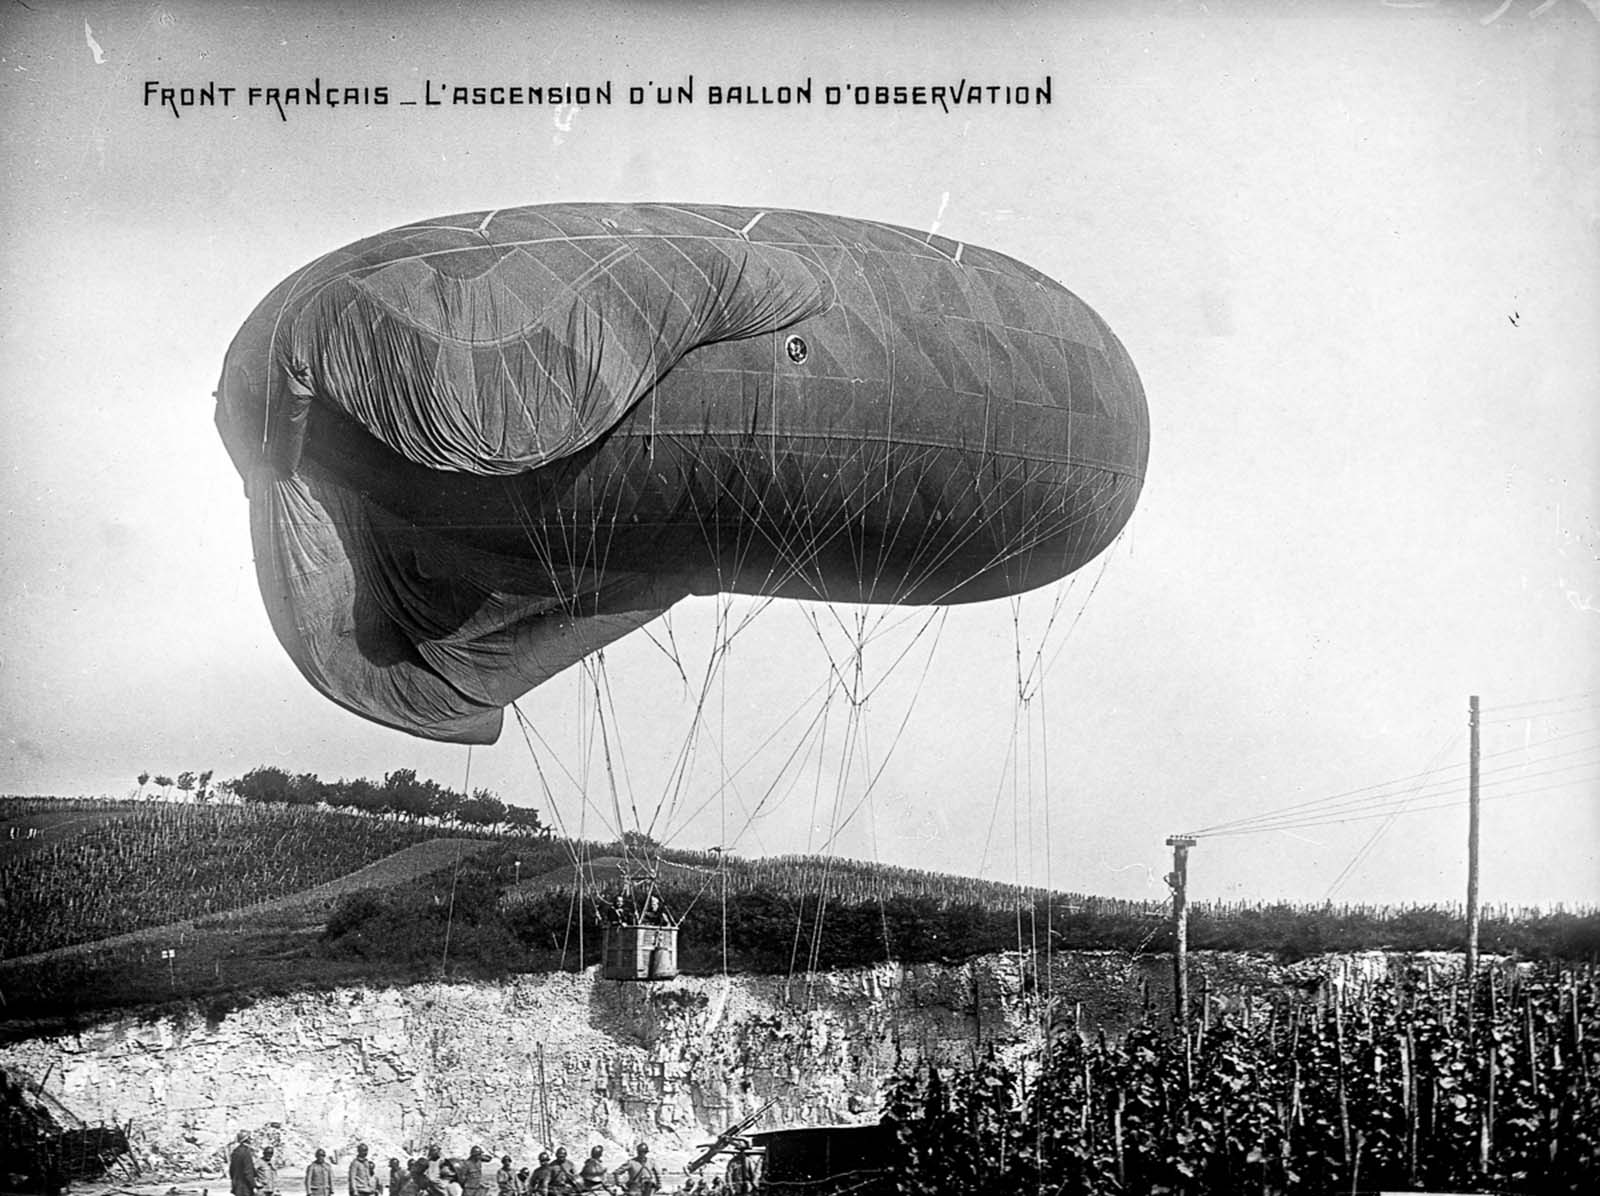 An observation balloon ascends on the French front. 1915.